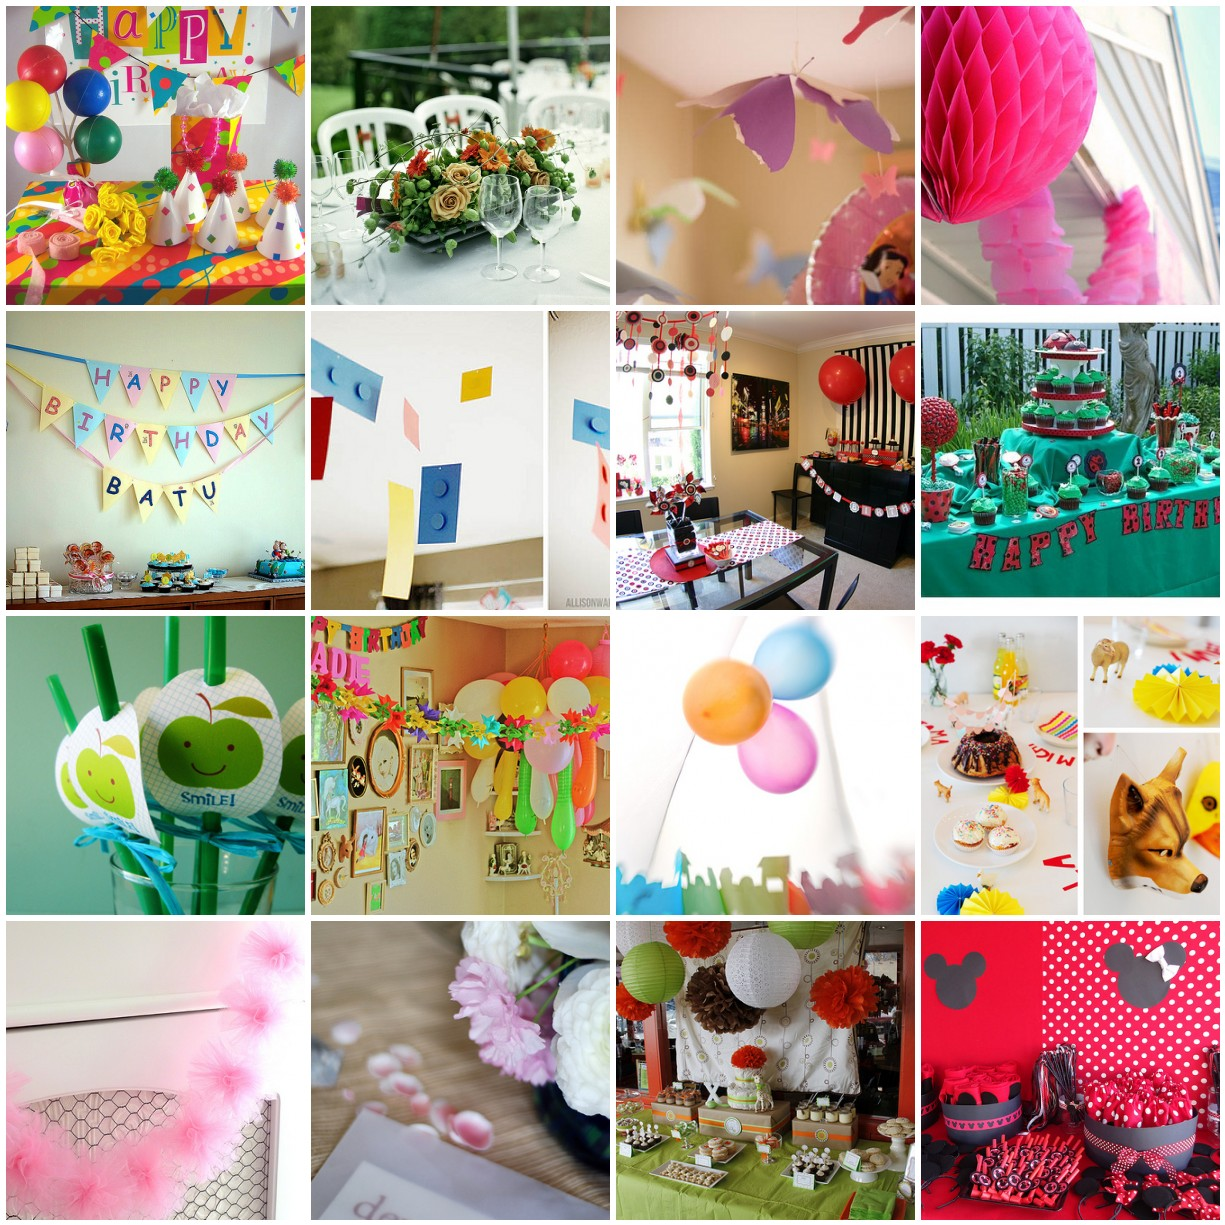 Decoration party party favors ideas for Home decorations for birthday party